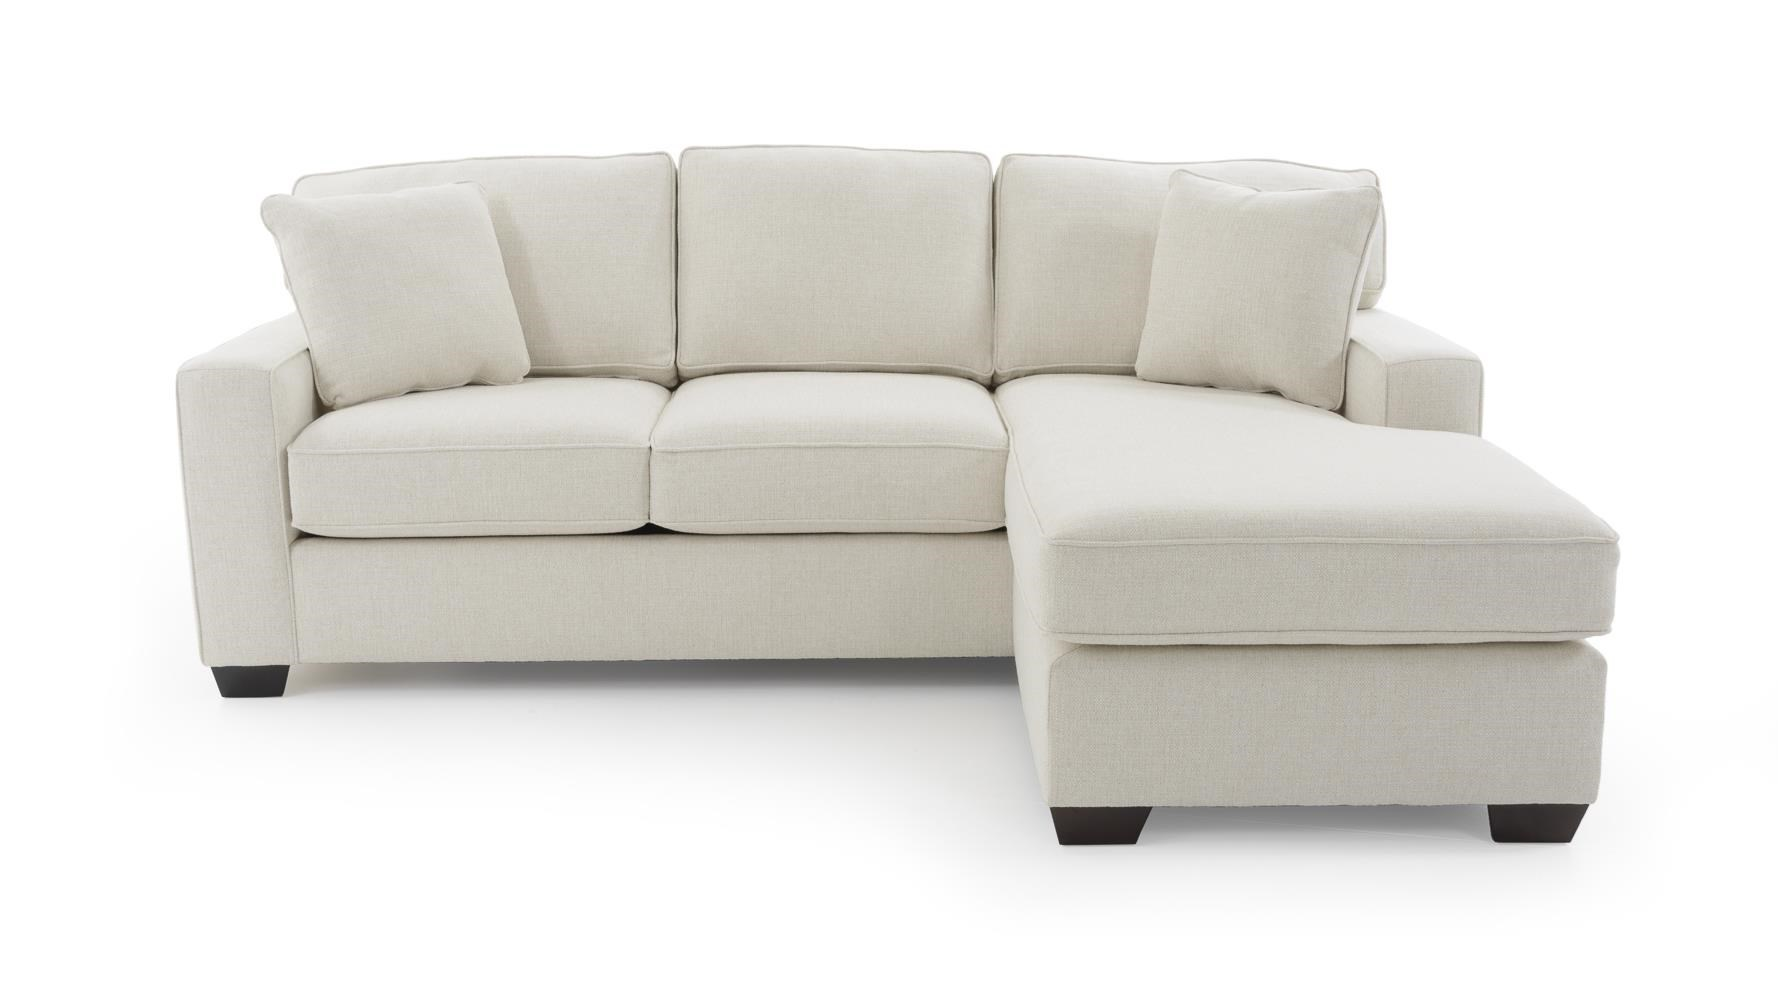 Charmant Max Home BermudaSleeper Sofa With Removable Chaise ...